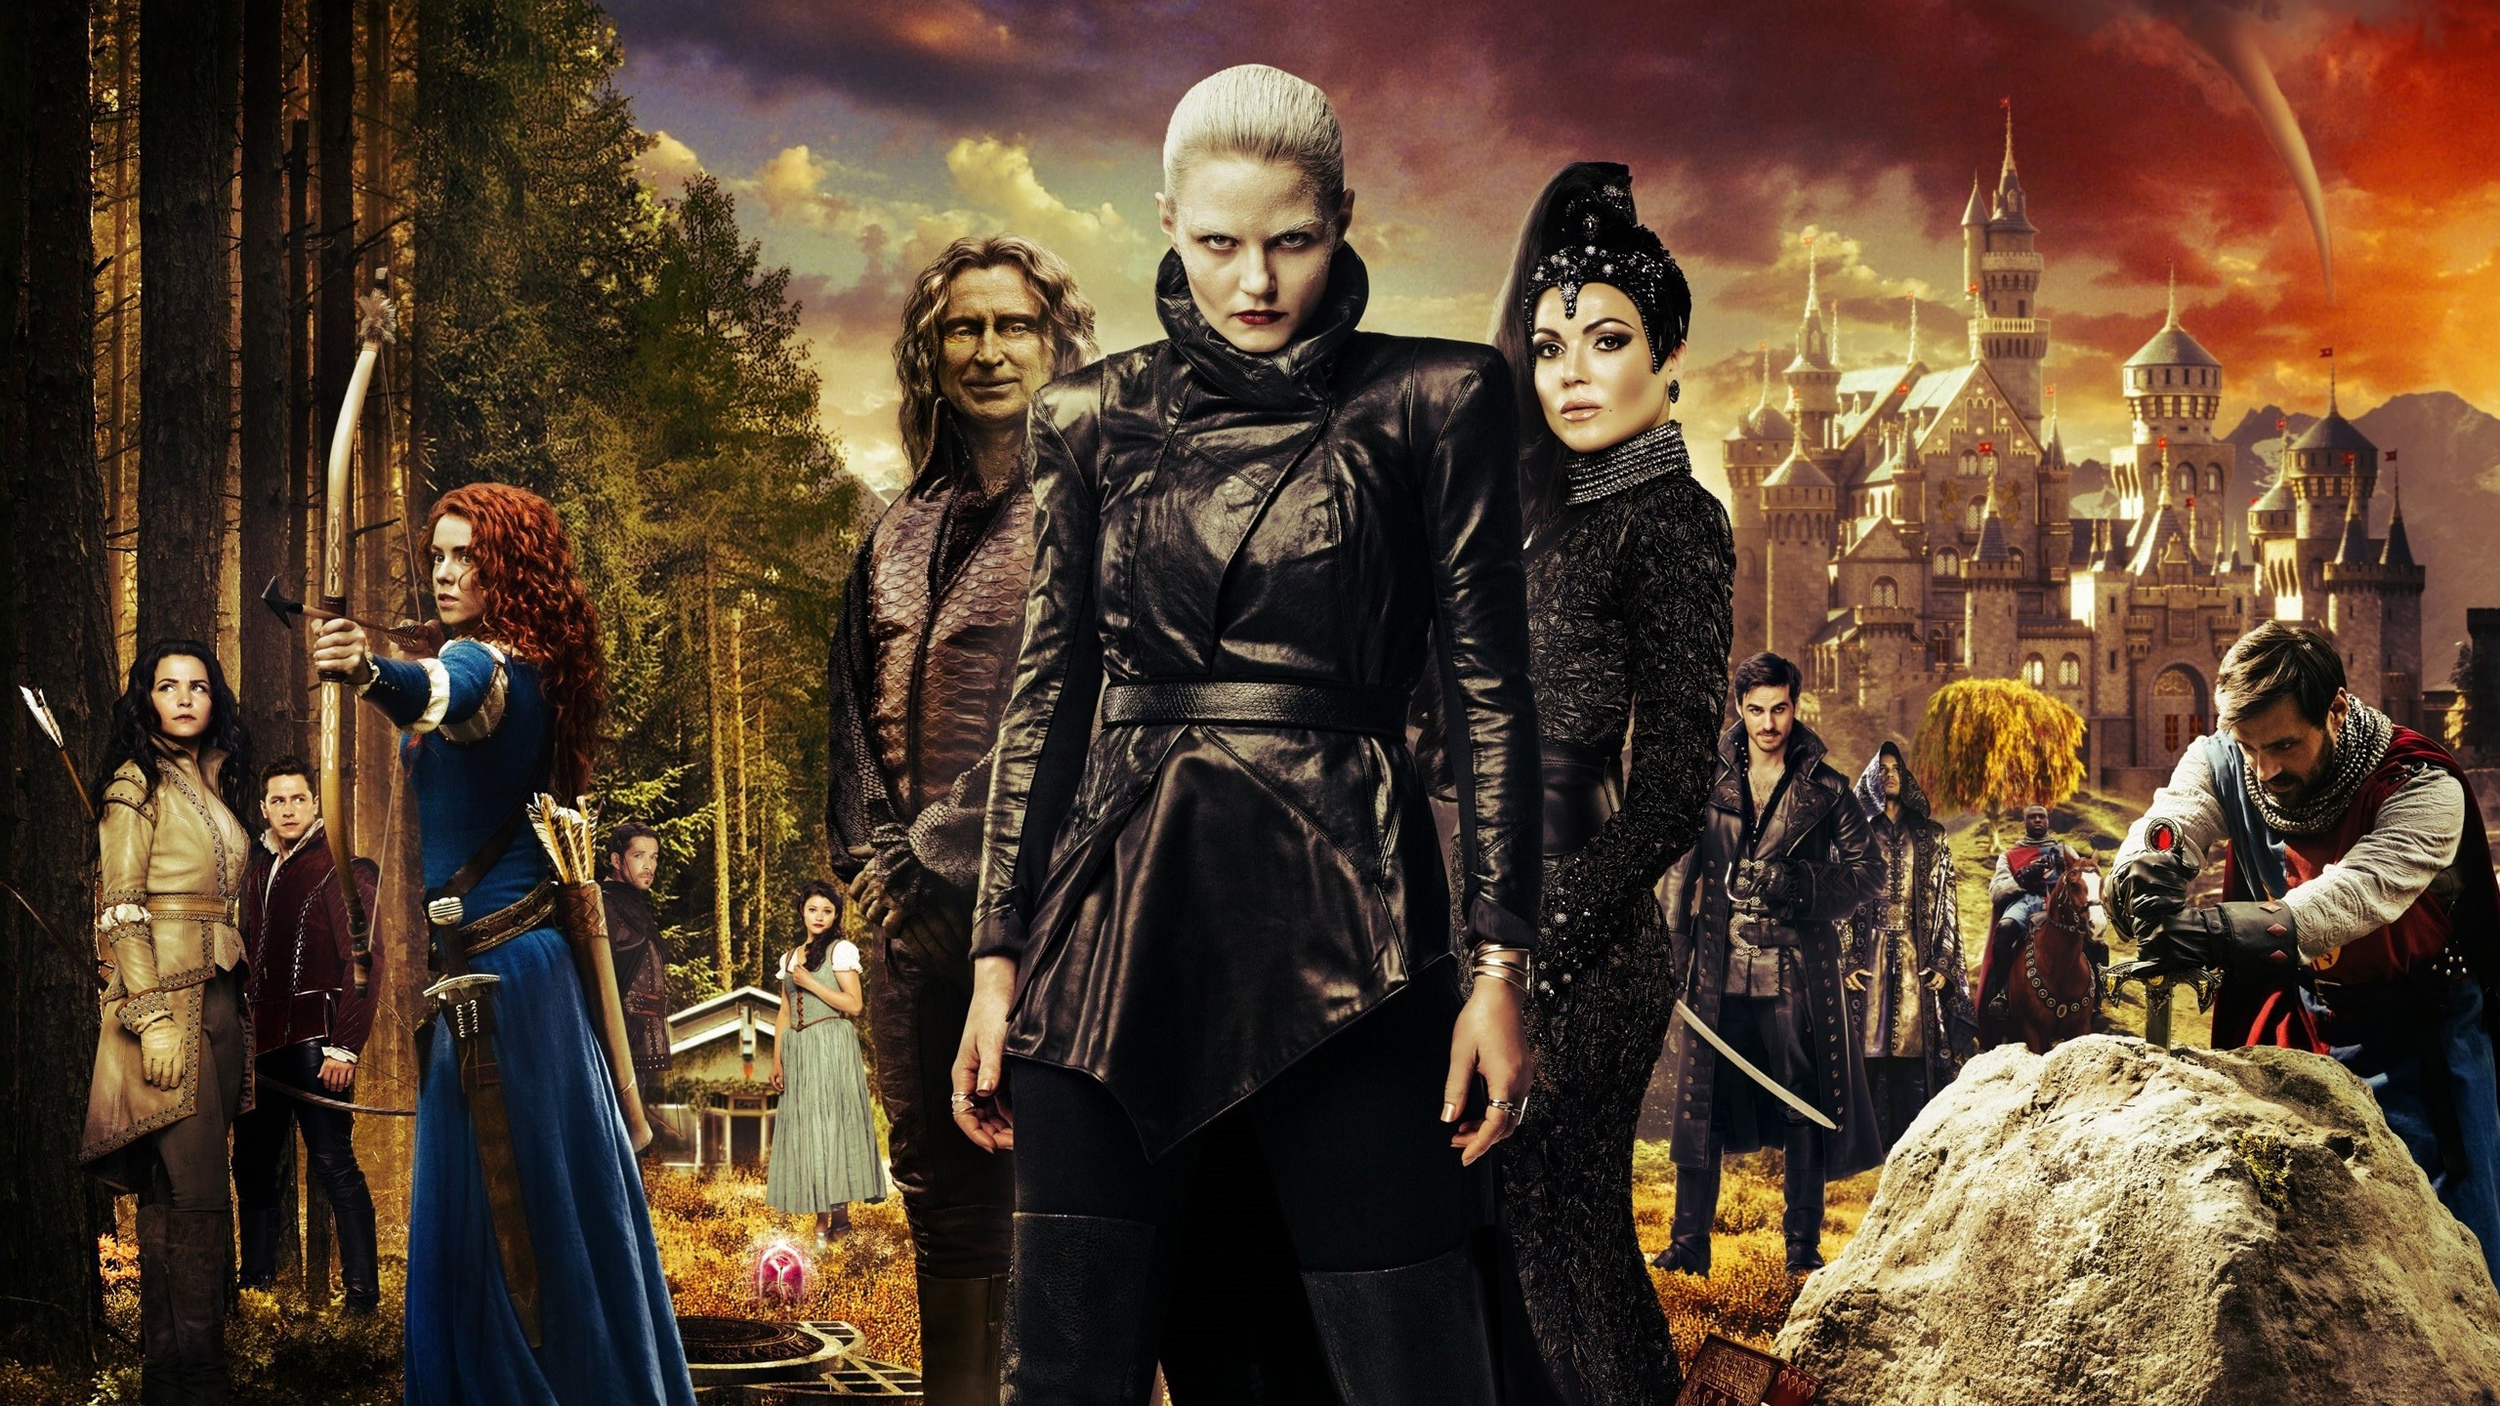 Once Upon a Time (TV series)